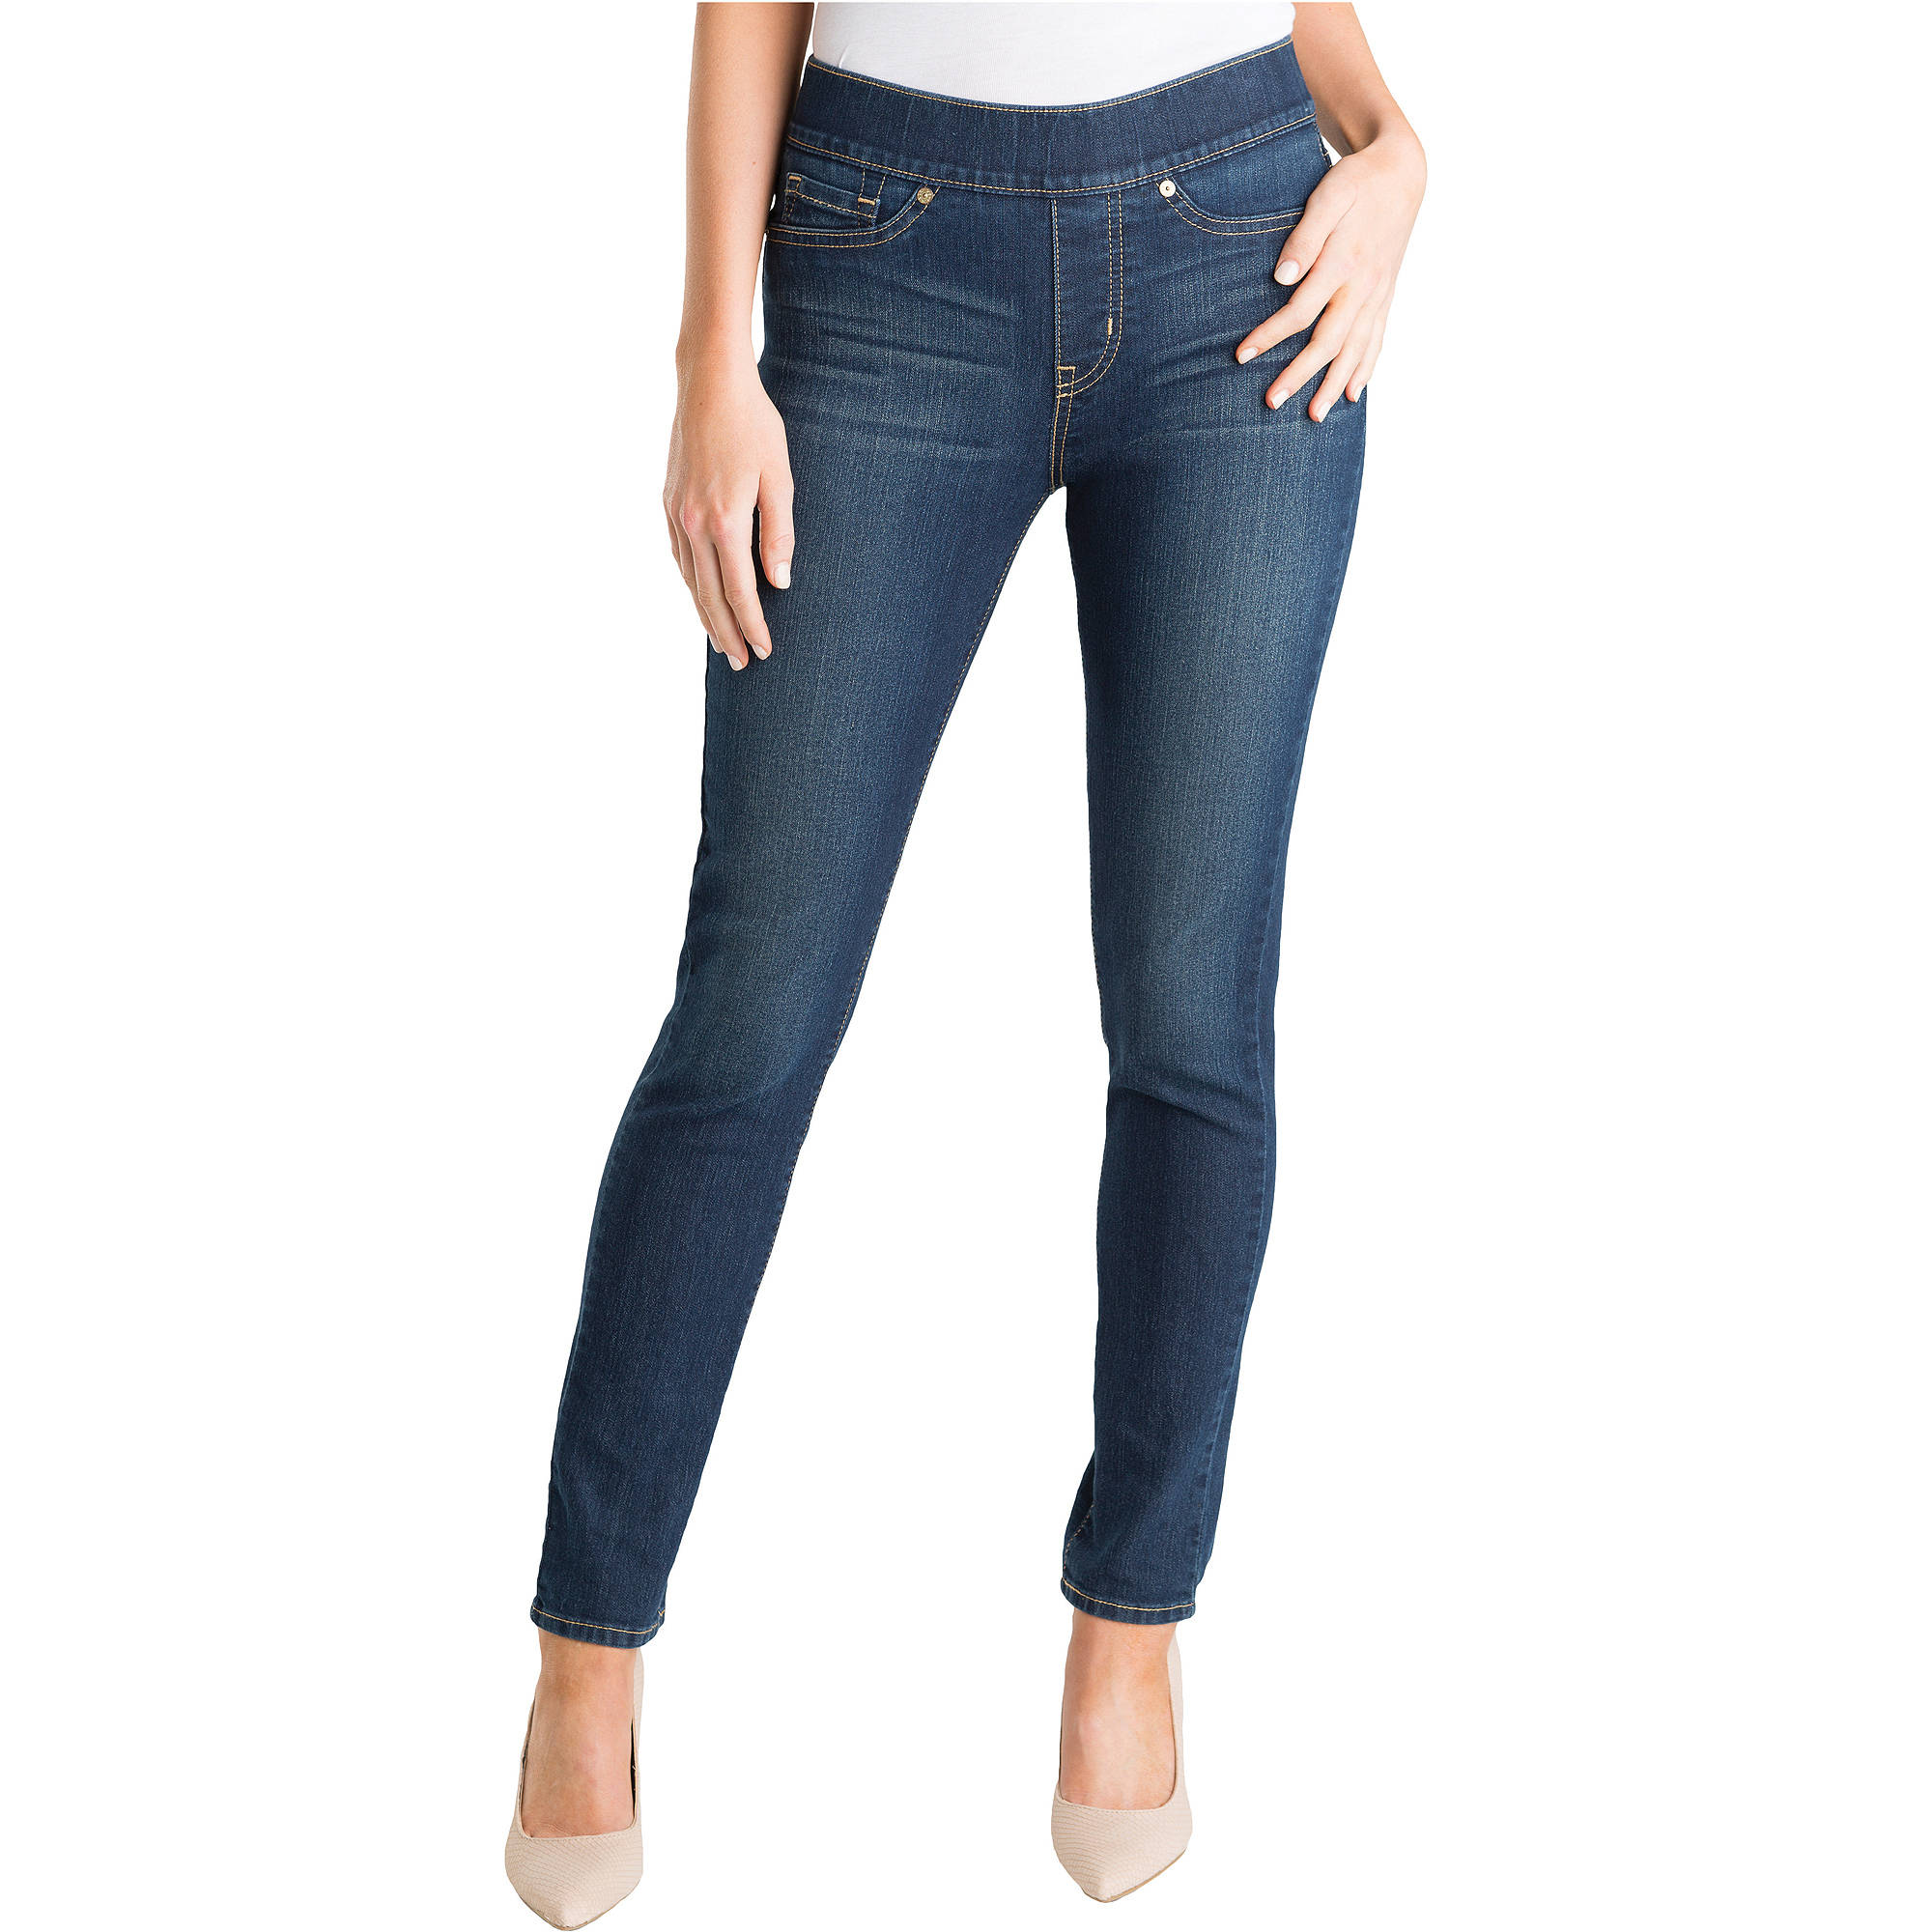 pull on jeans product fjezquq